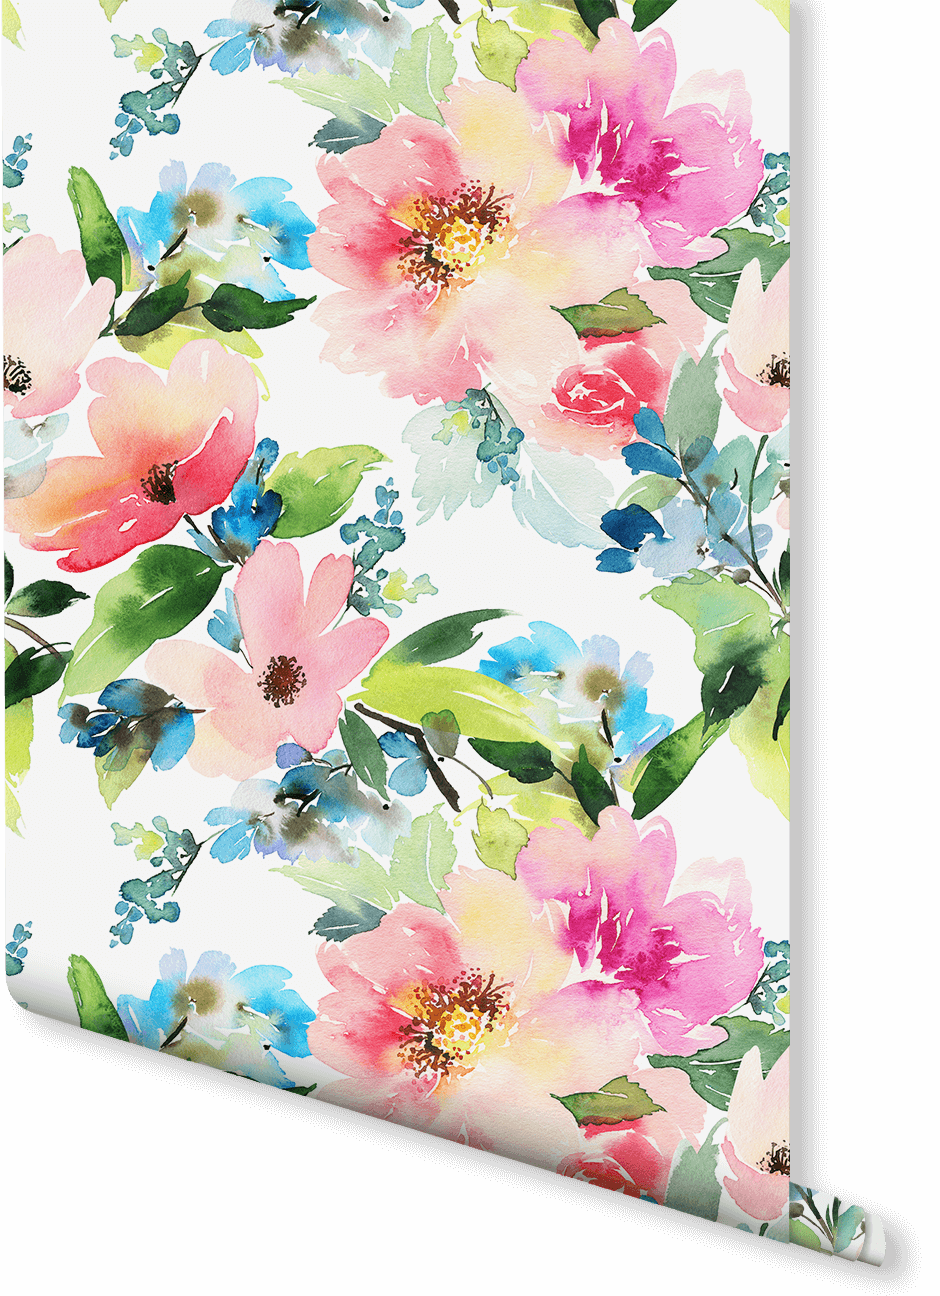 Summer Floral Watercolor Wallpaper Vintage Flowers Wallpaper